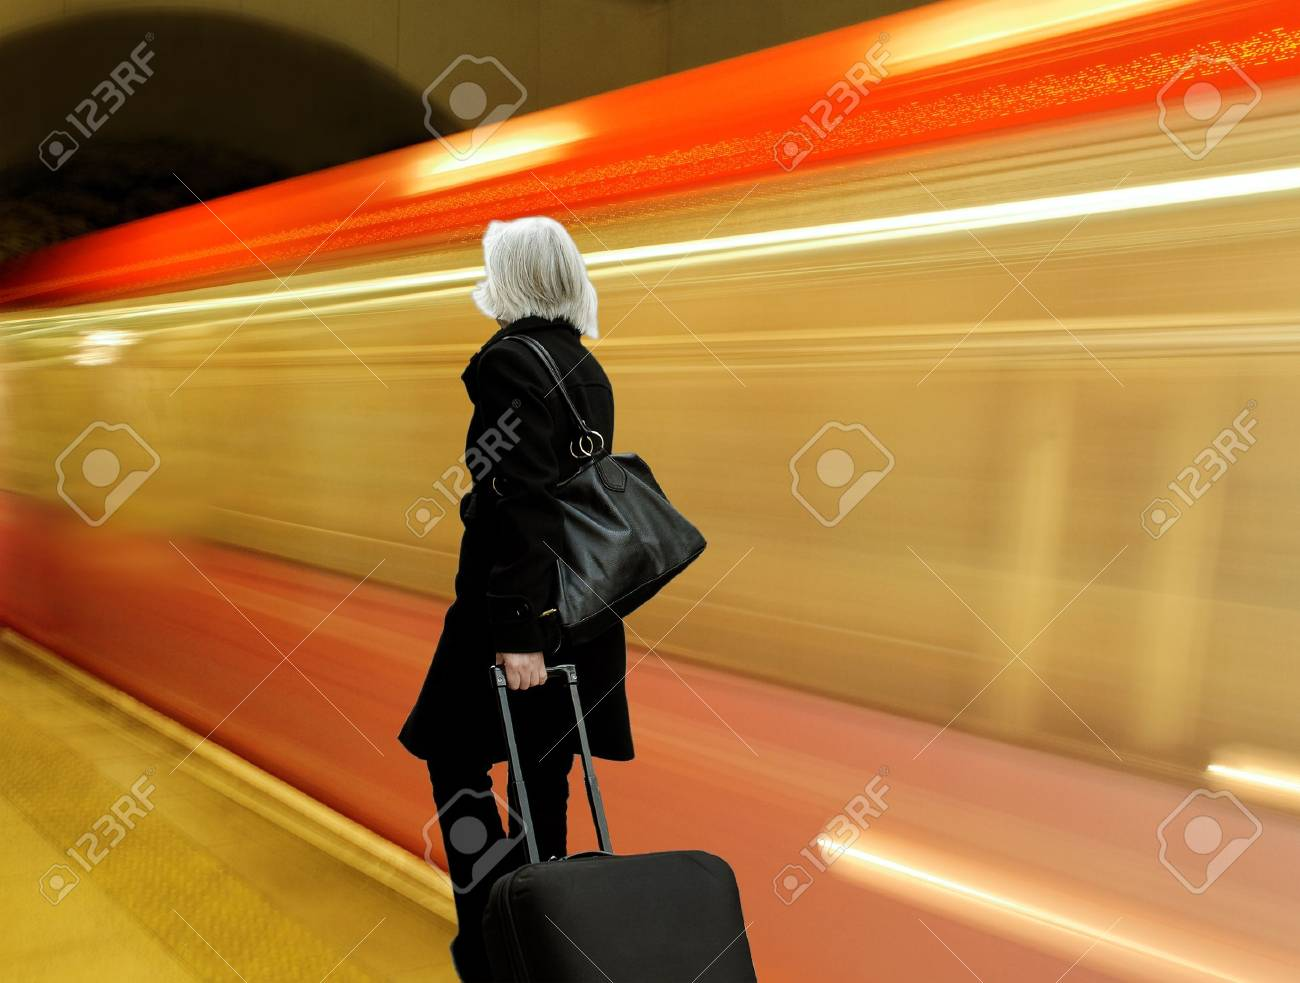 Woman with bags in metro - 15076099